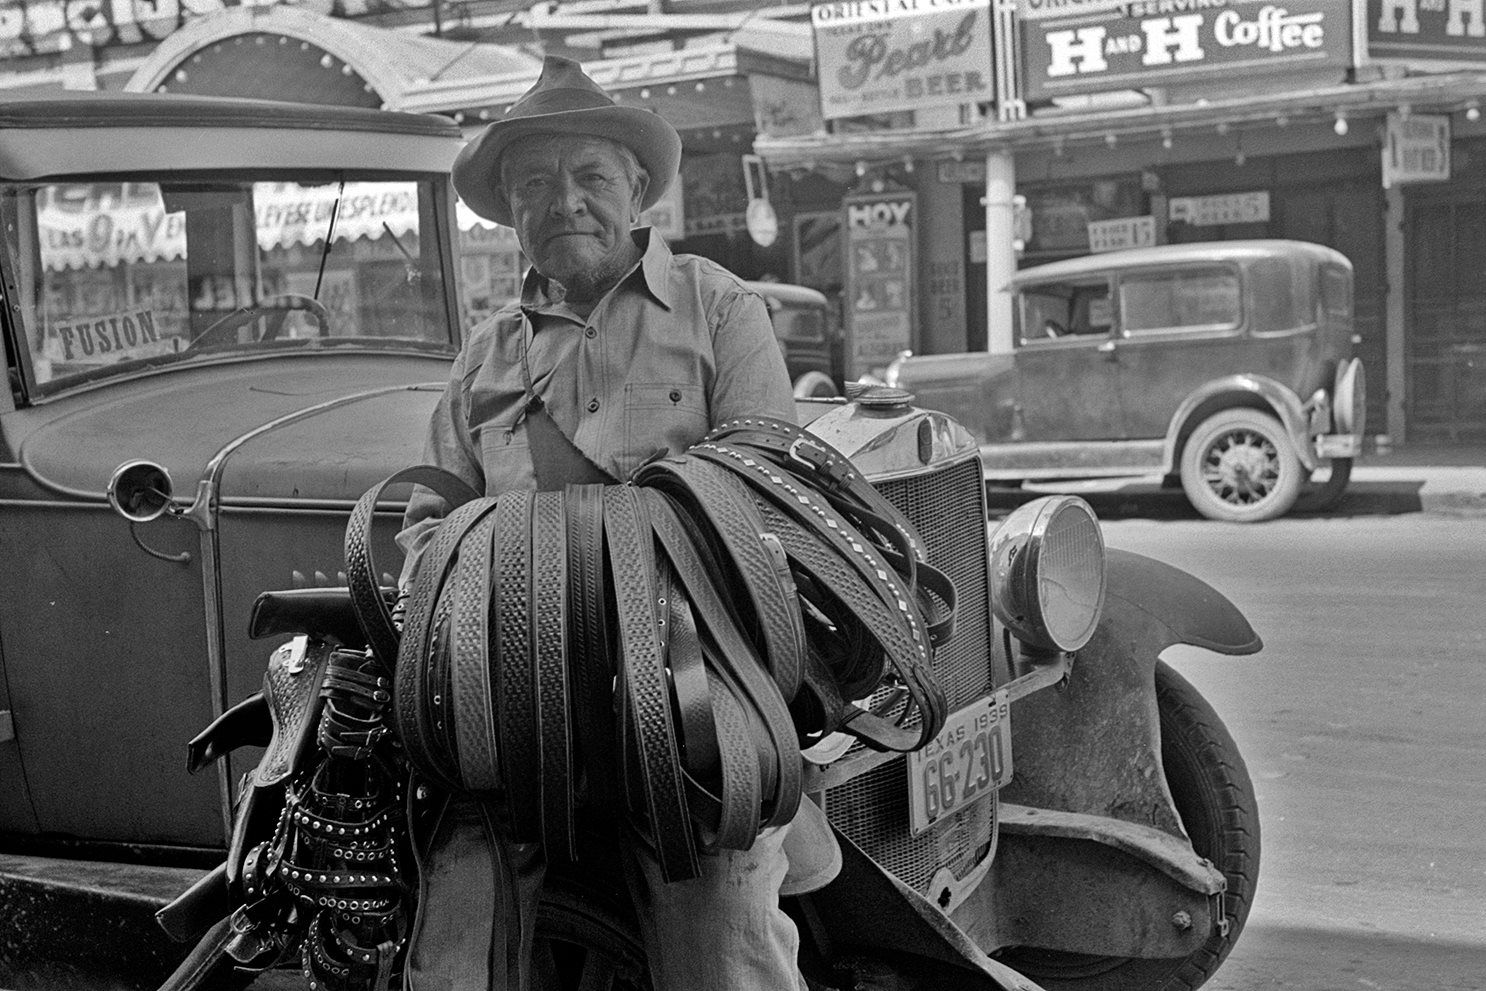 A leather goods salesman in San Antonio, Texas. 1939.